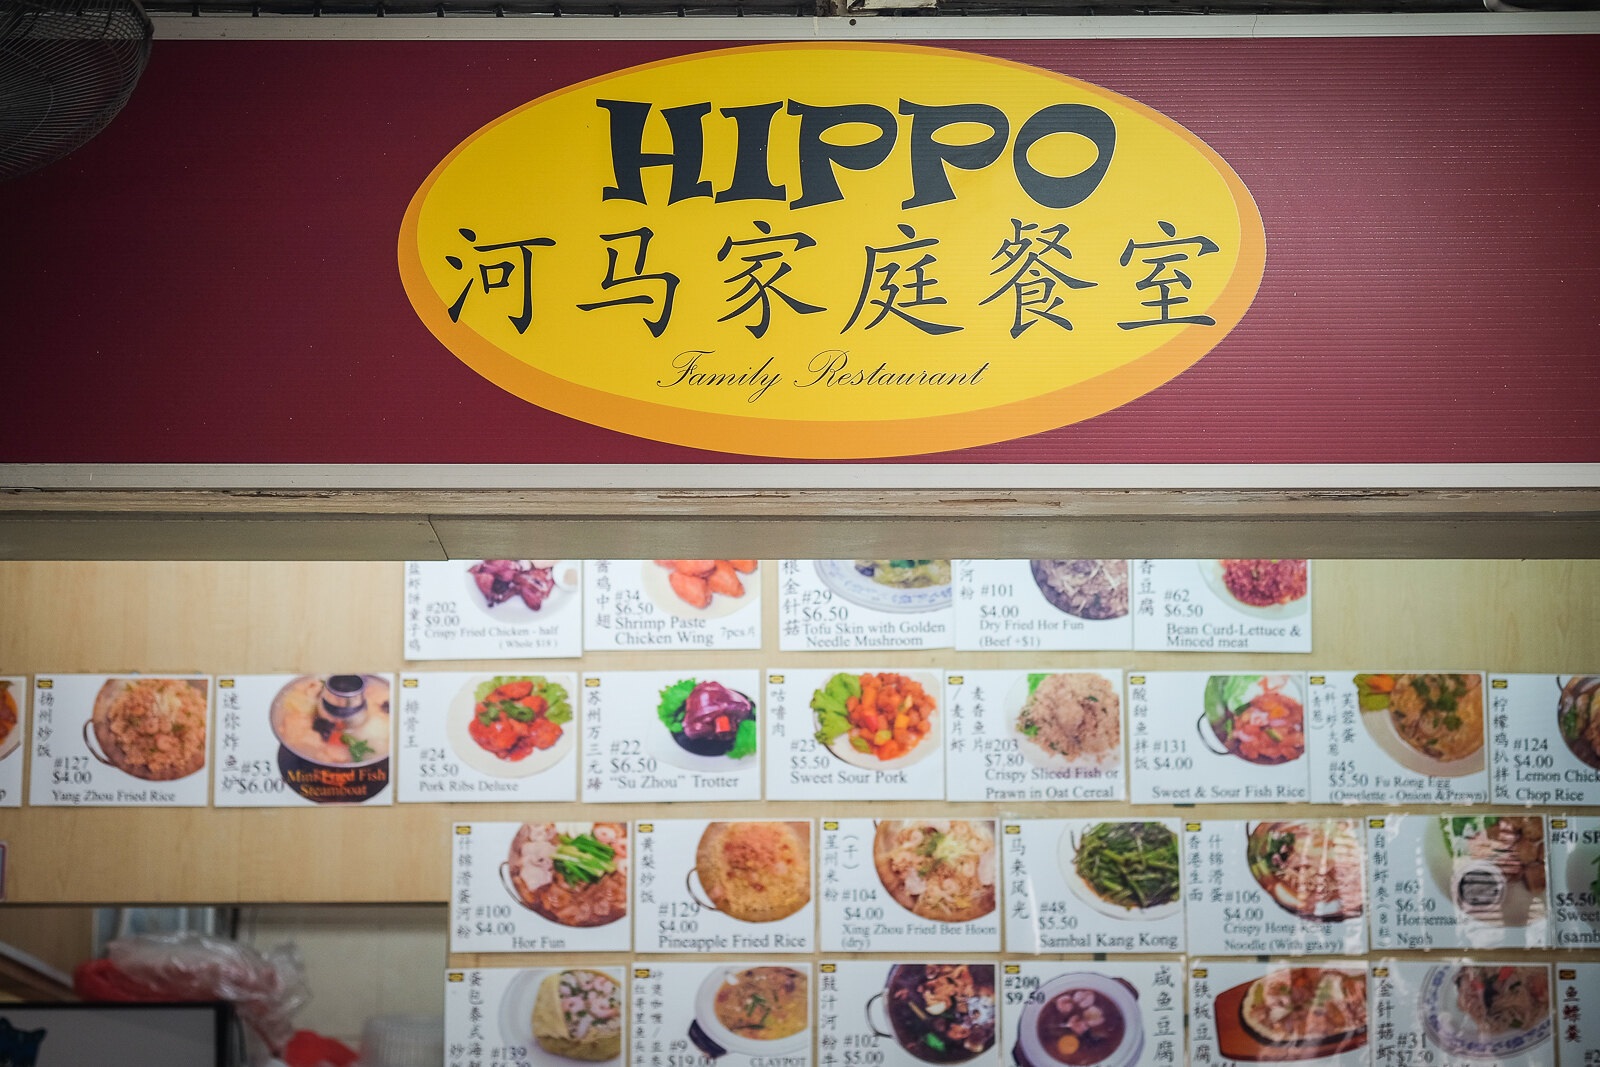 Hippo Family Restaurant Humble Zichar Eatery For Gatherings With